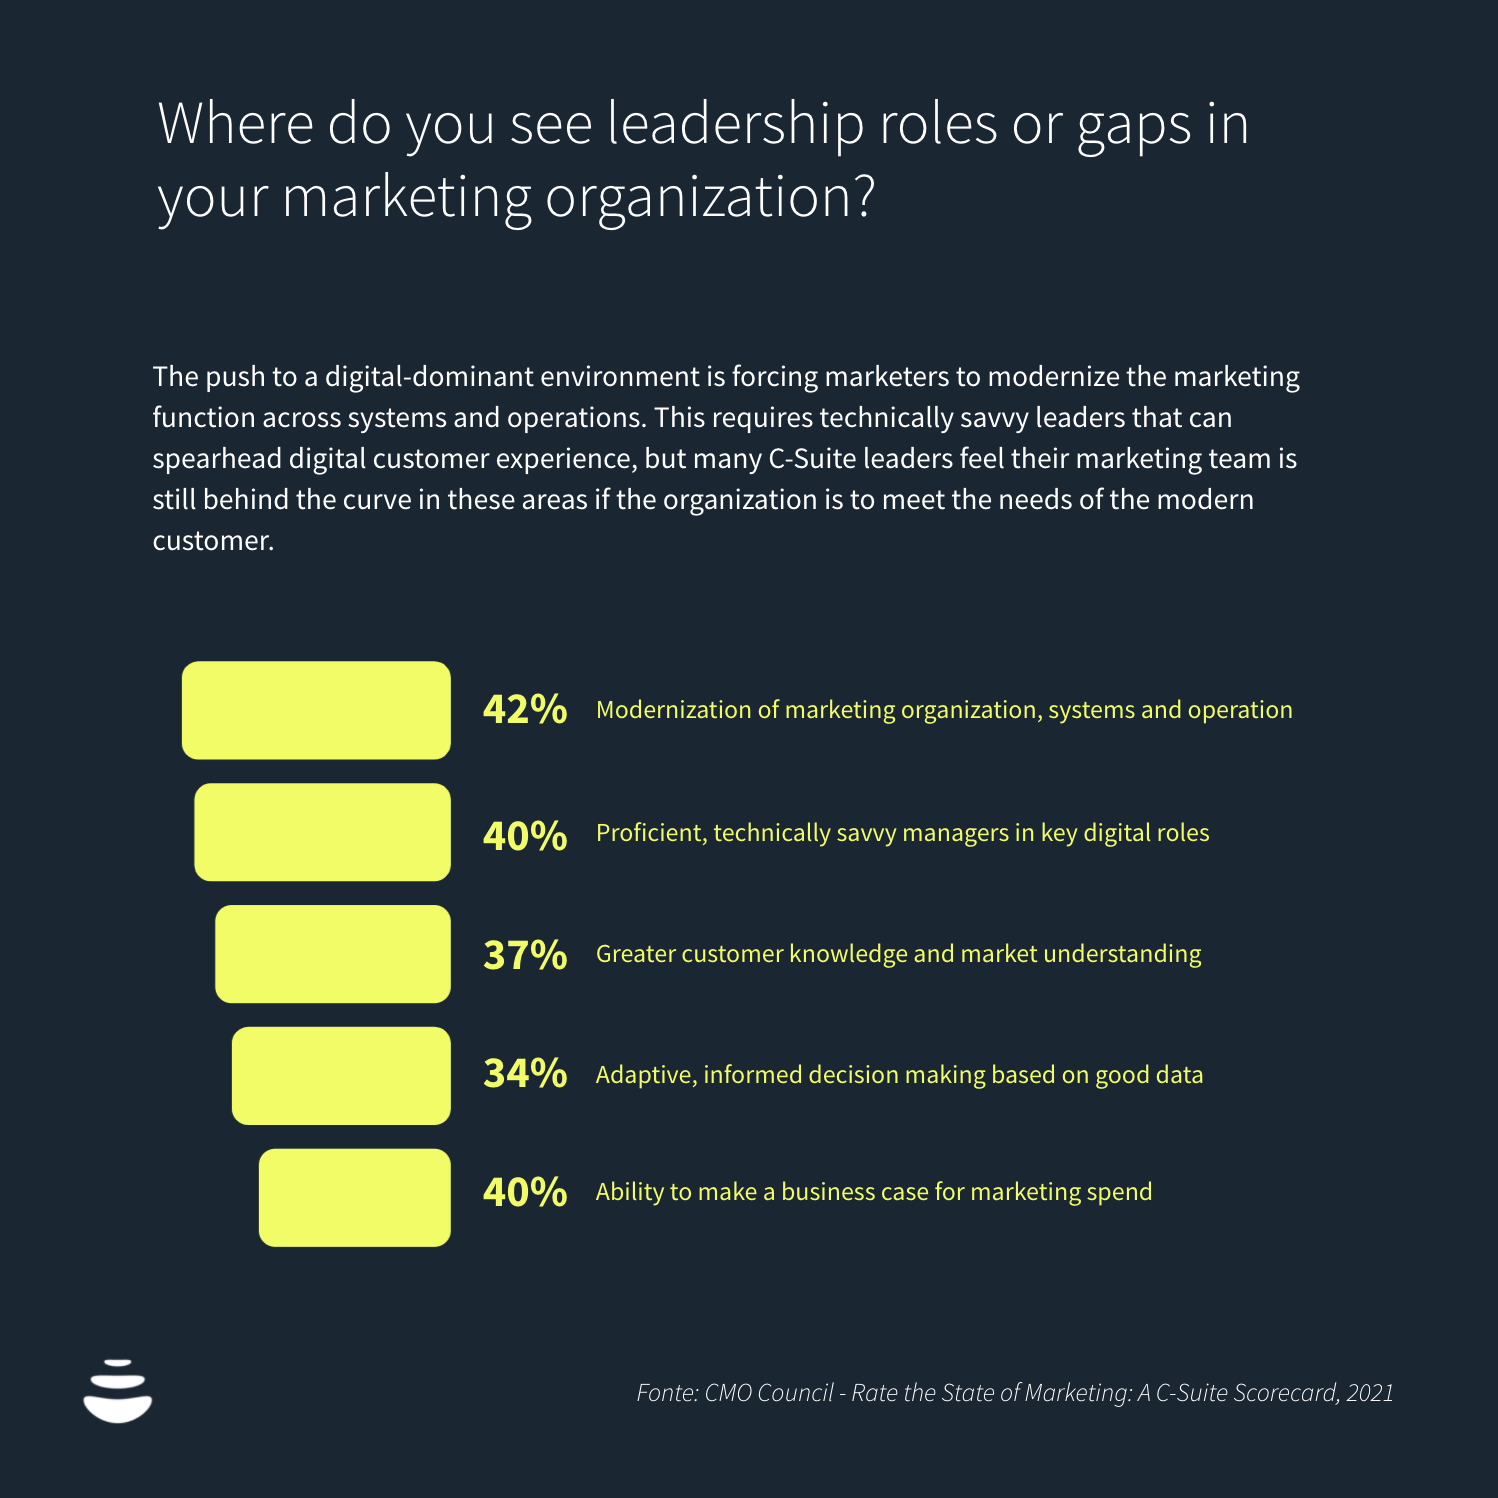 Where do you see leadership roles or gaps in your marketing organization?